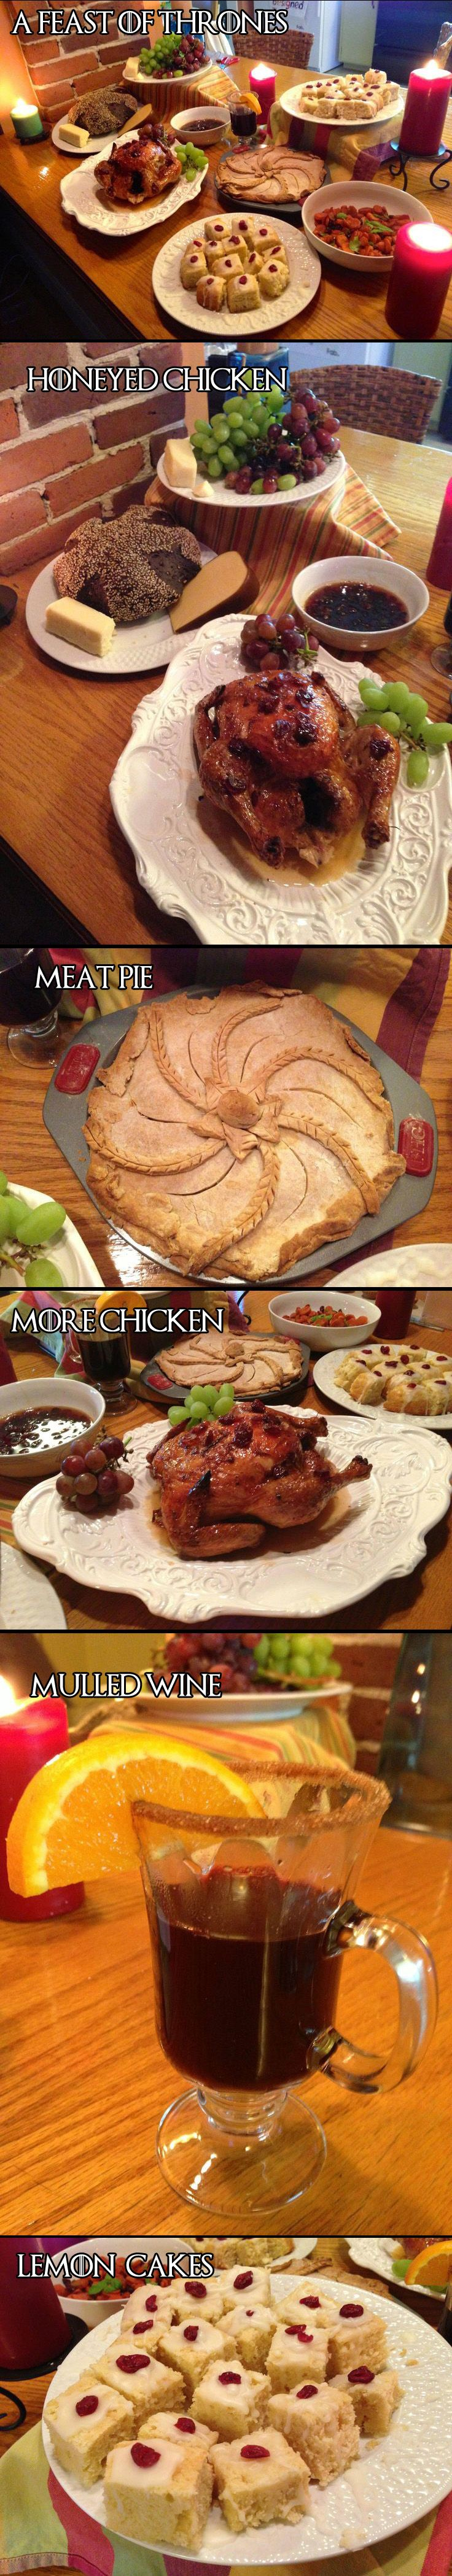 Google themes game of thrones - Menu Ideas A Feast Of Thrones Must Have Chicken Meat Pies Mulled